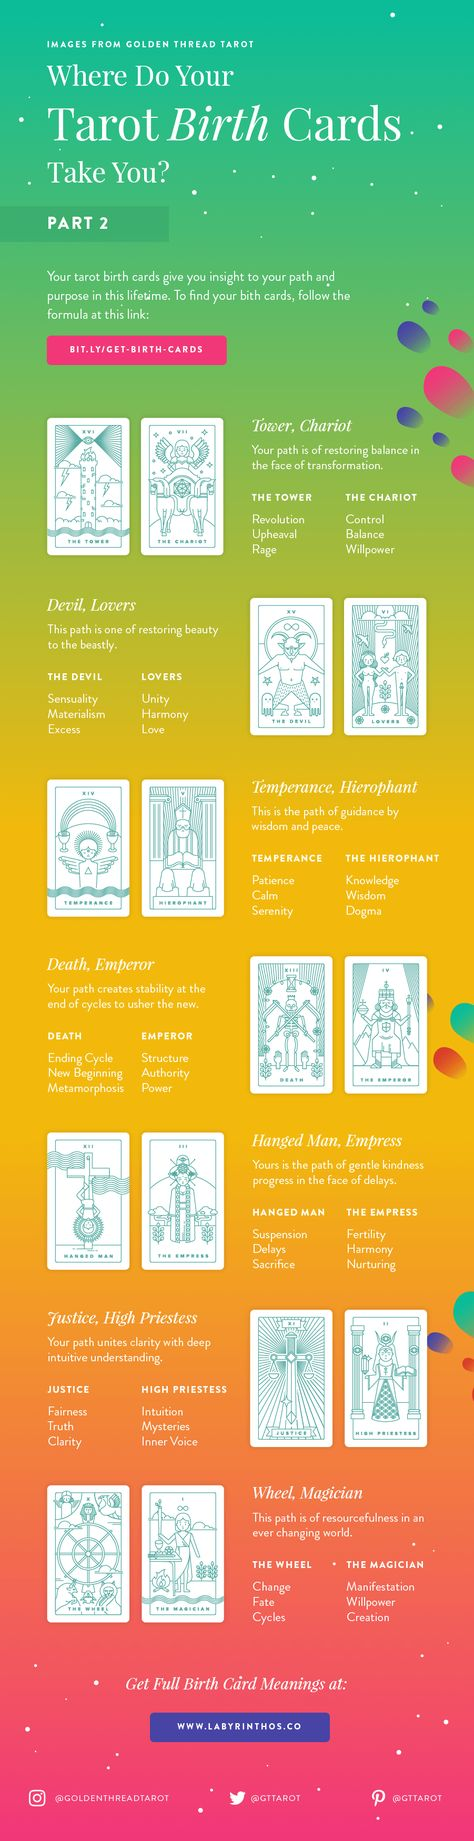 How To Calculate Your Tarot Birth Card Plus Short Birth Card Meanings Infographic Birth Cards Tarot Tarot Learning